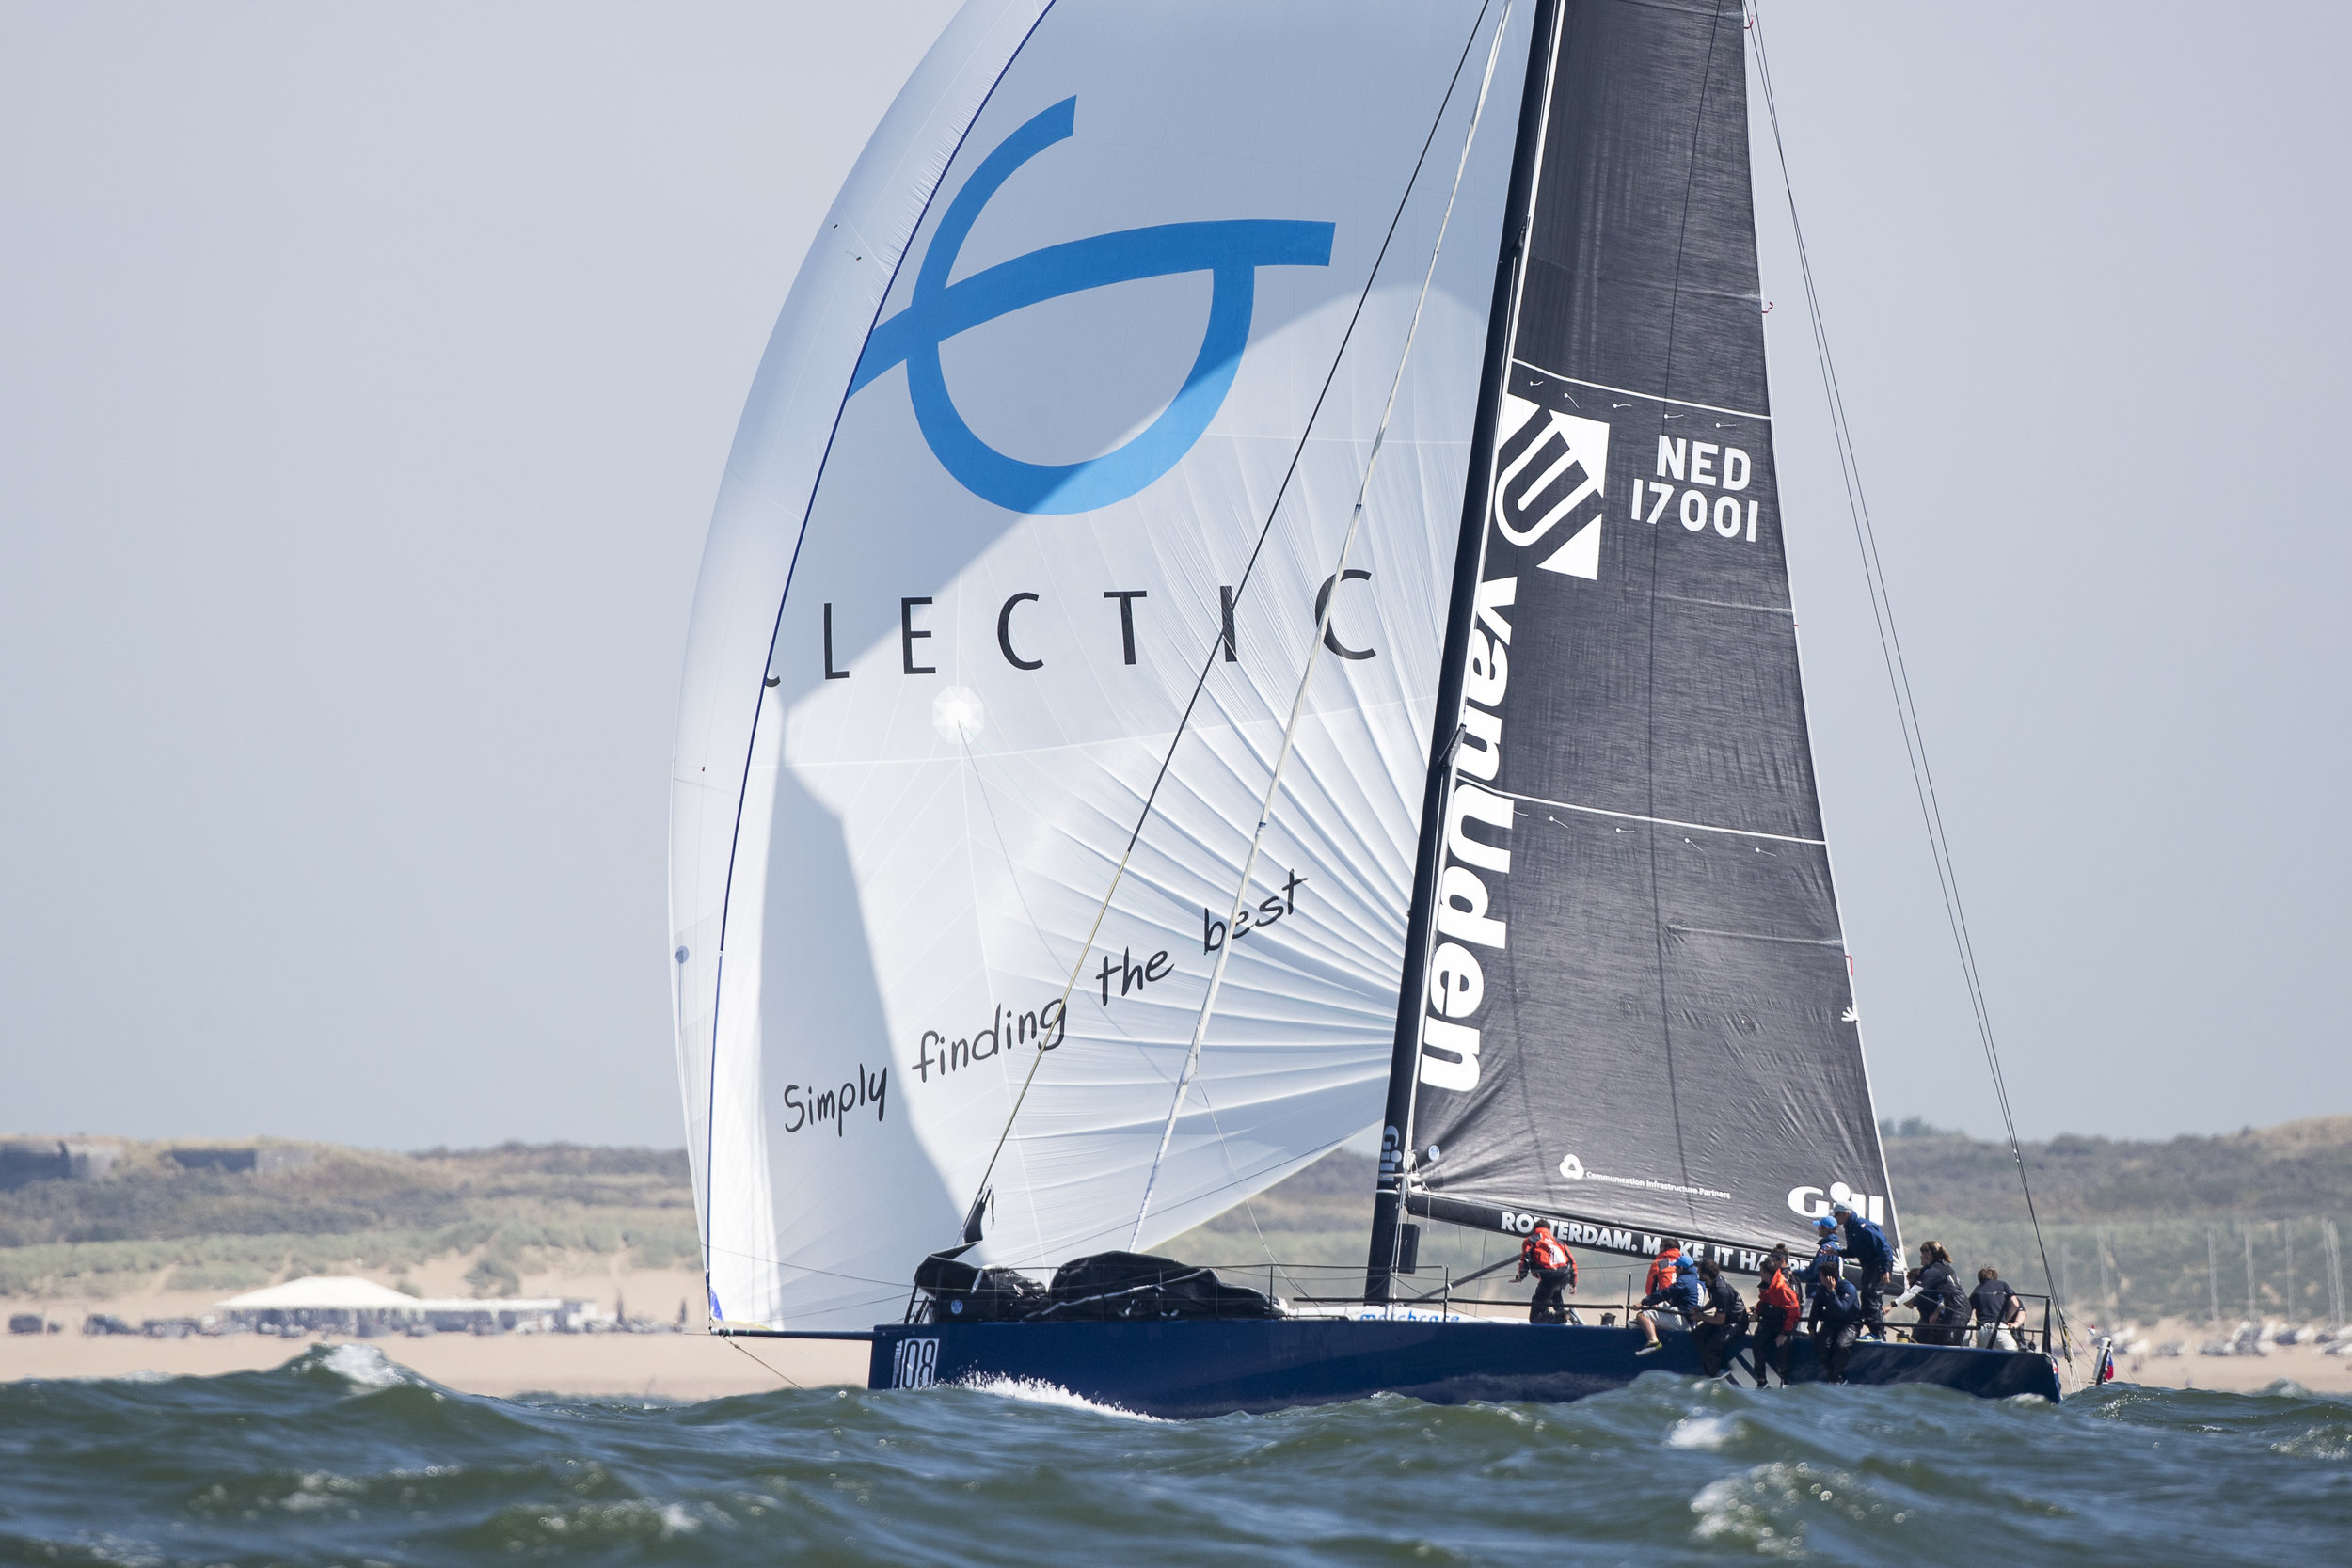 Ker 46 van Uden - The McConaghy built Ker 46 Van Uden is a state of the art racing yacht. The yacht has a depth of 3.30m and weighs only 6 tons. Equiped with full carbon hull and mast, the yacht is well capable of speeds exceeding 25 knots.